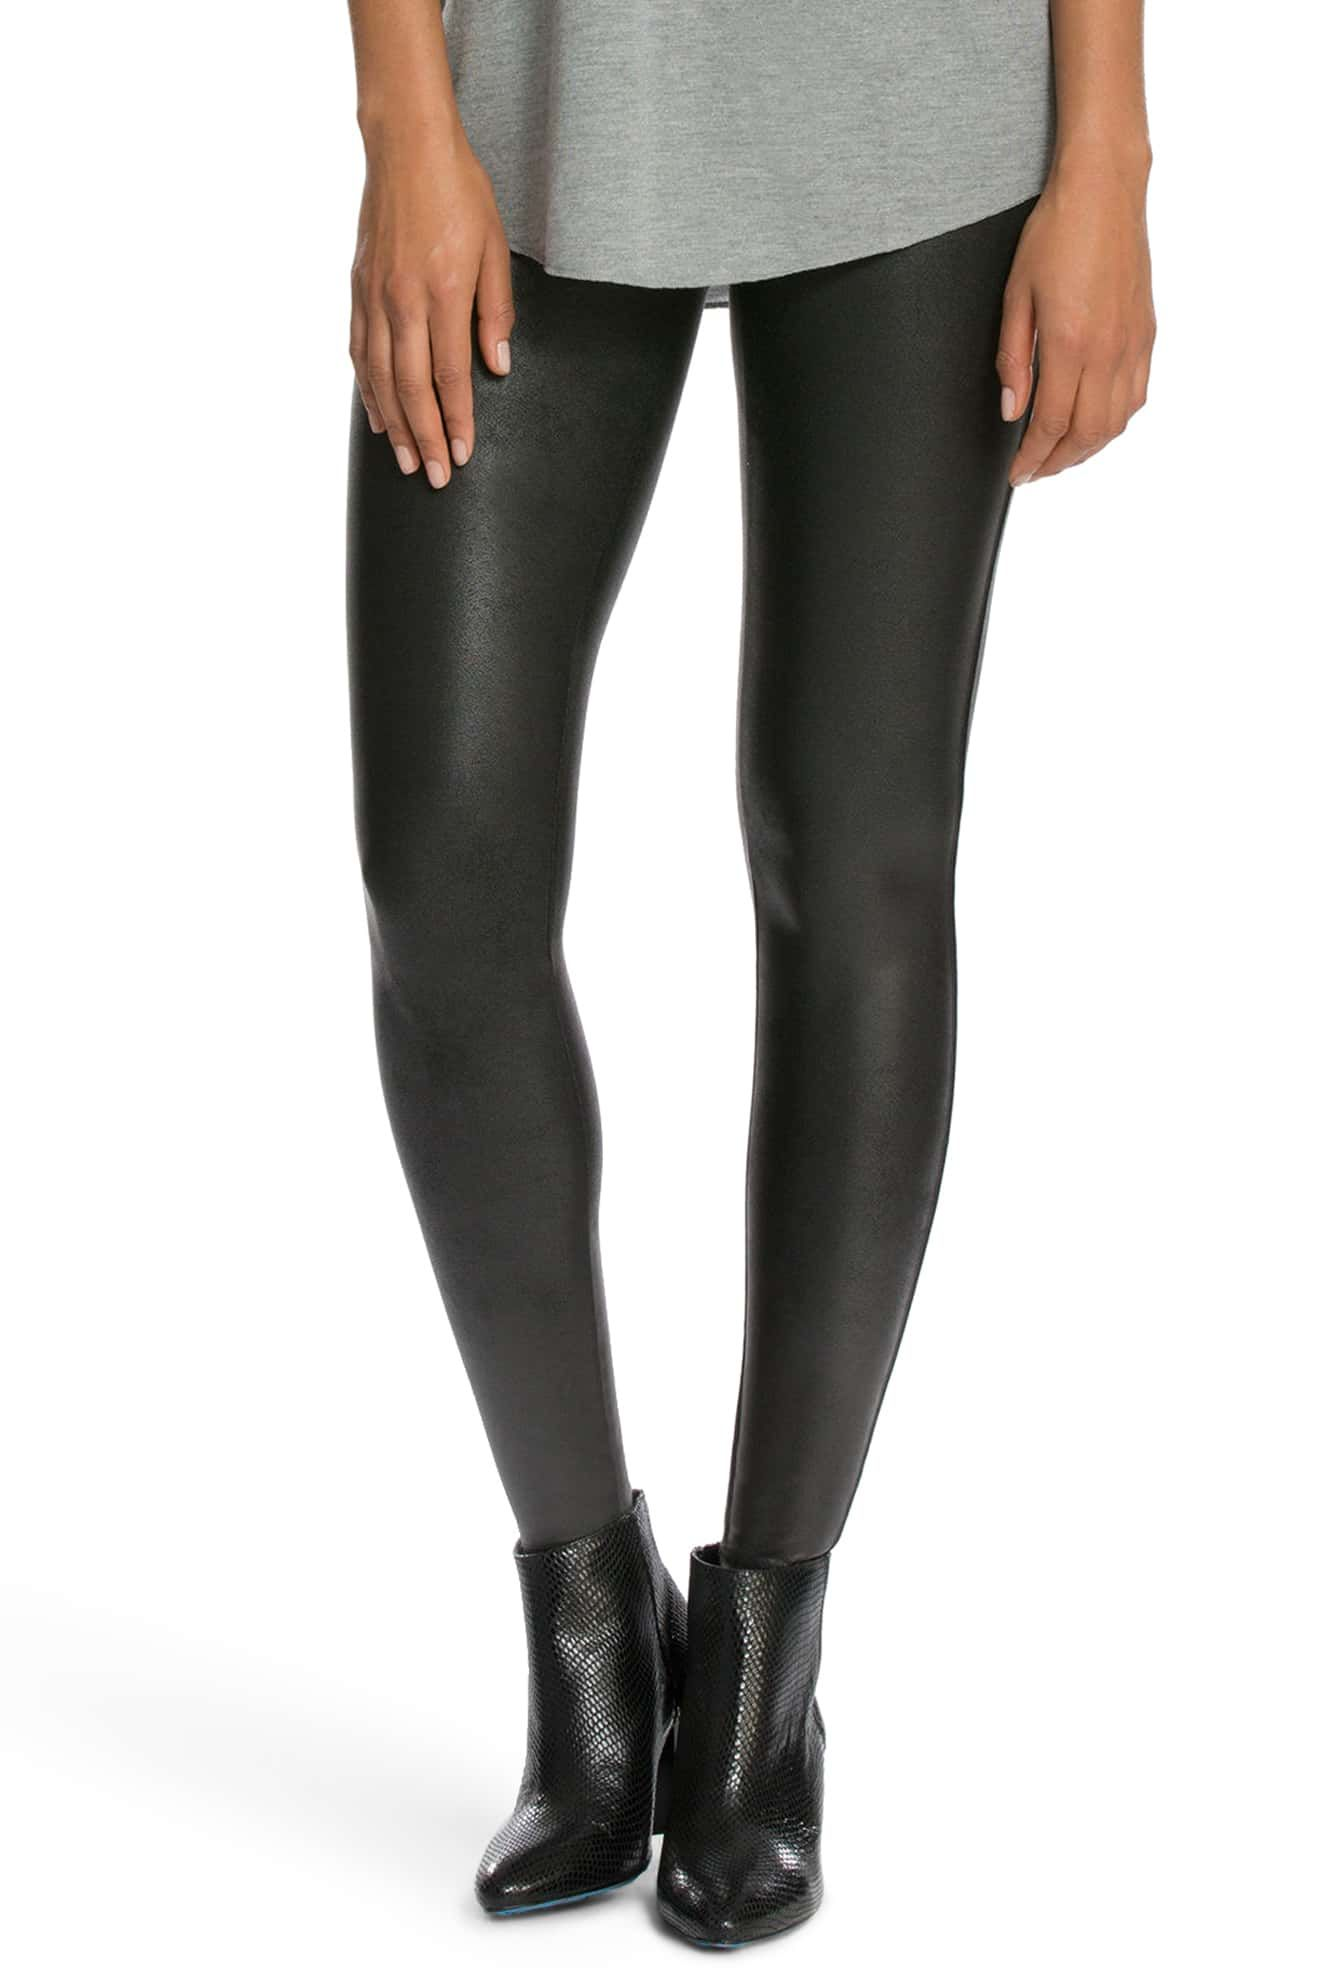 most popular lowest price hot-selling cheap Spanx Faux Leather Leggings Review: Are They Worth the Hype?